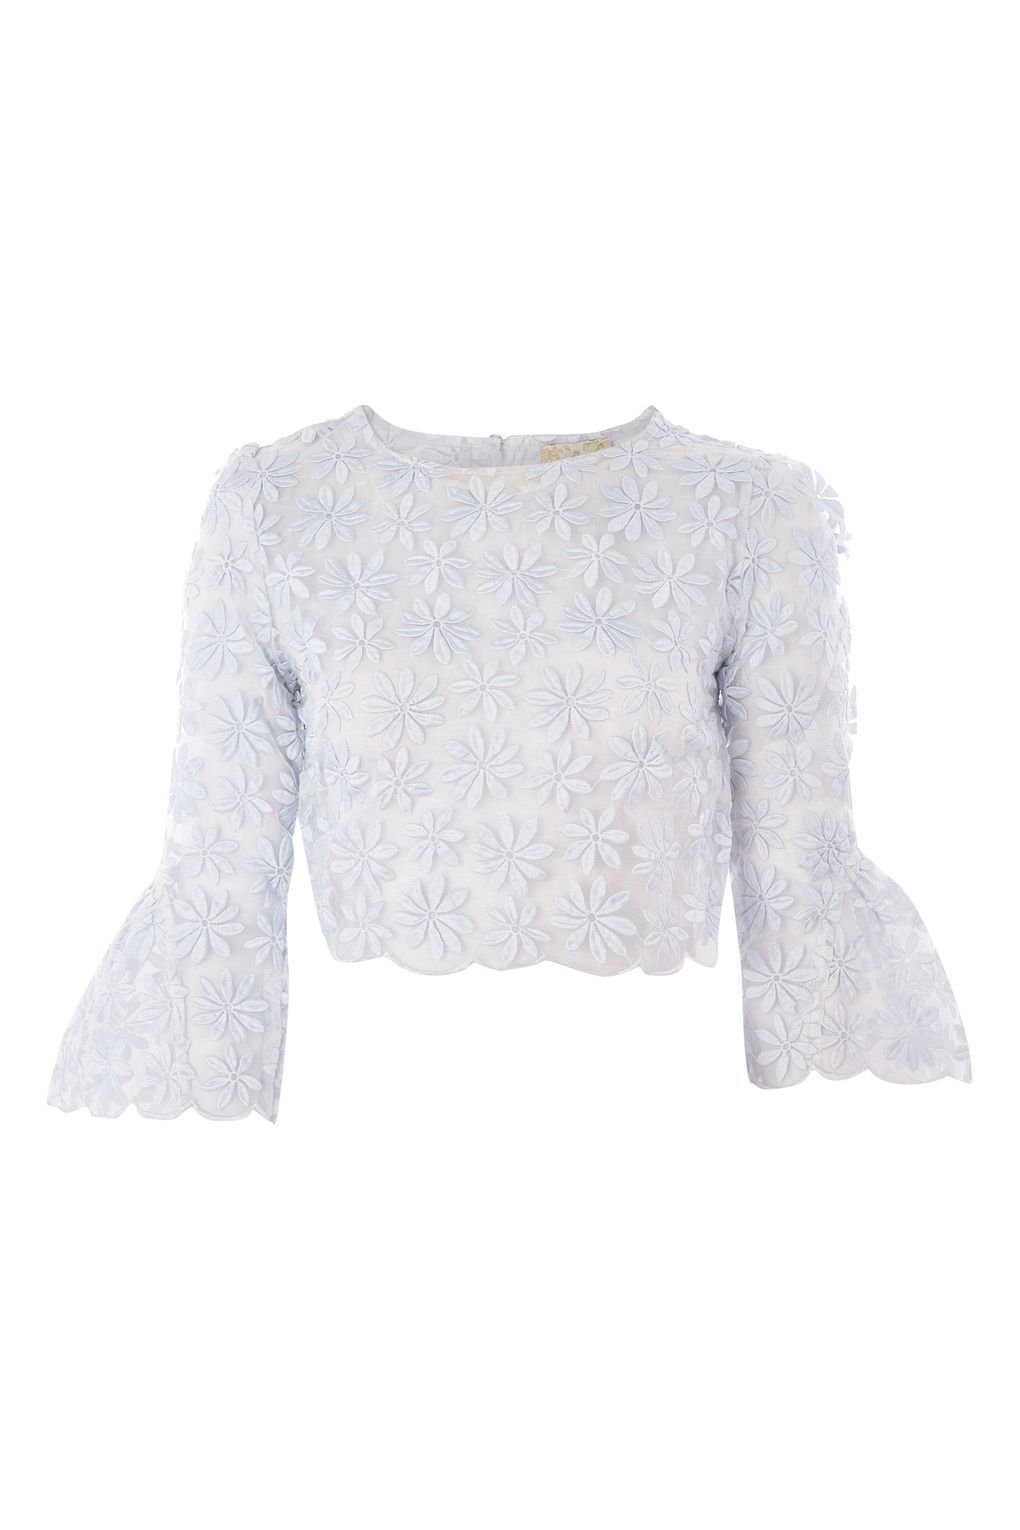 Goose Embroidered Mesh Crop Top By Lace Beads Lace Mesh Crop Top Crop Tops